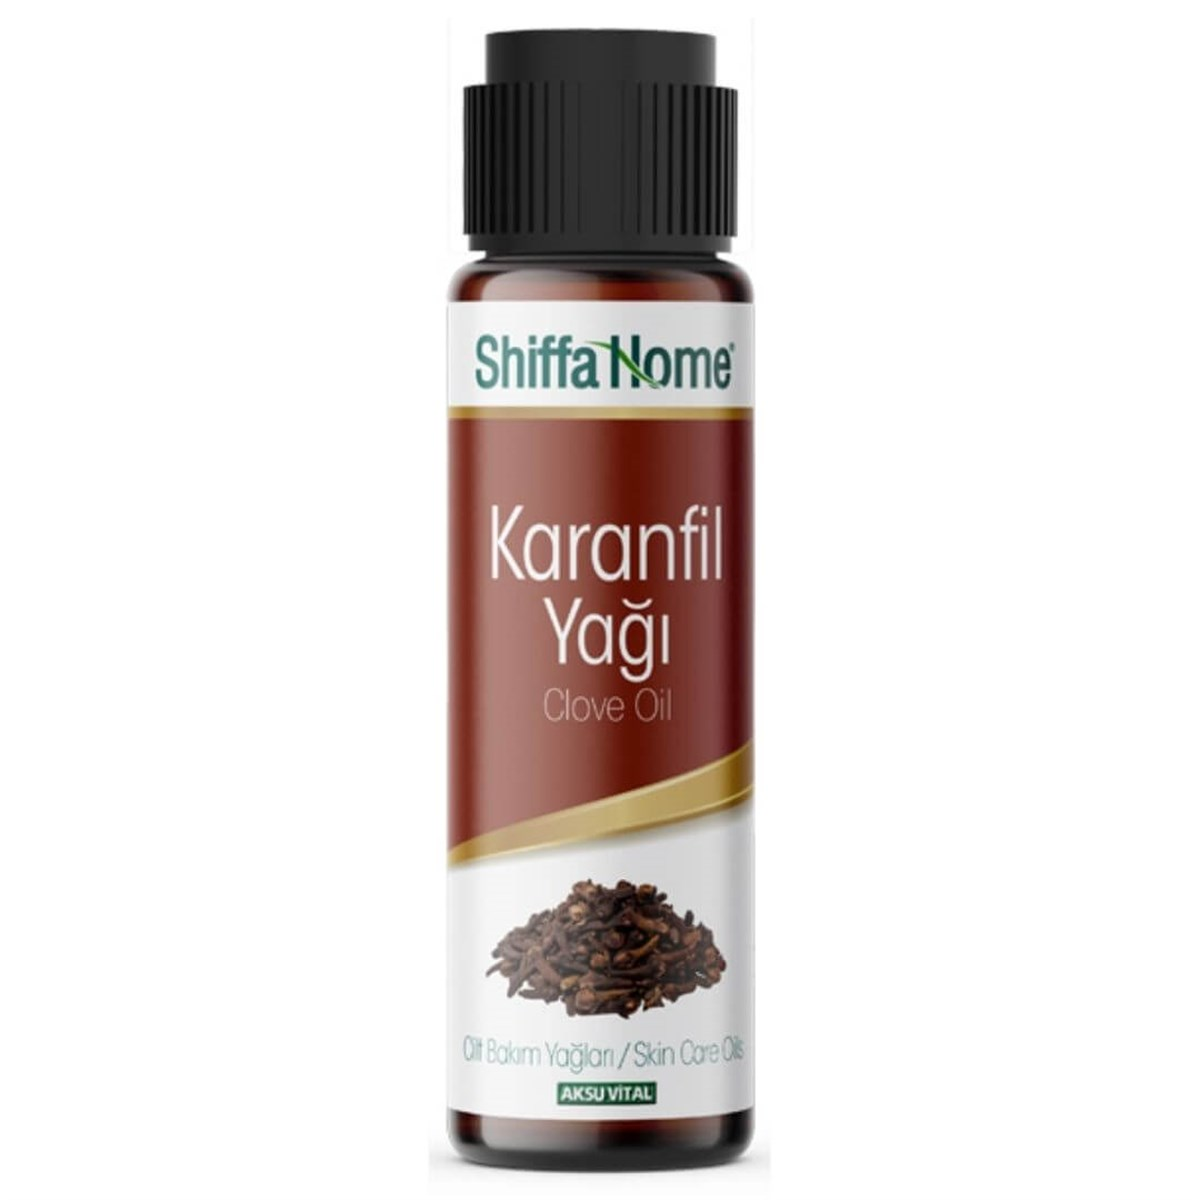 Shiffa Home Karanfil Yağı 30 ml